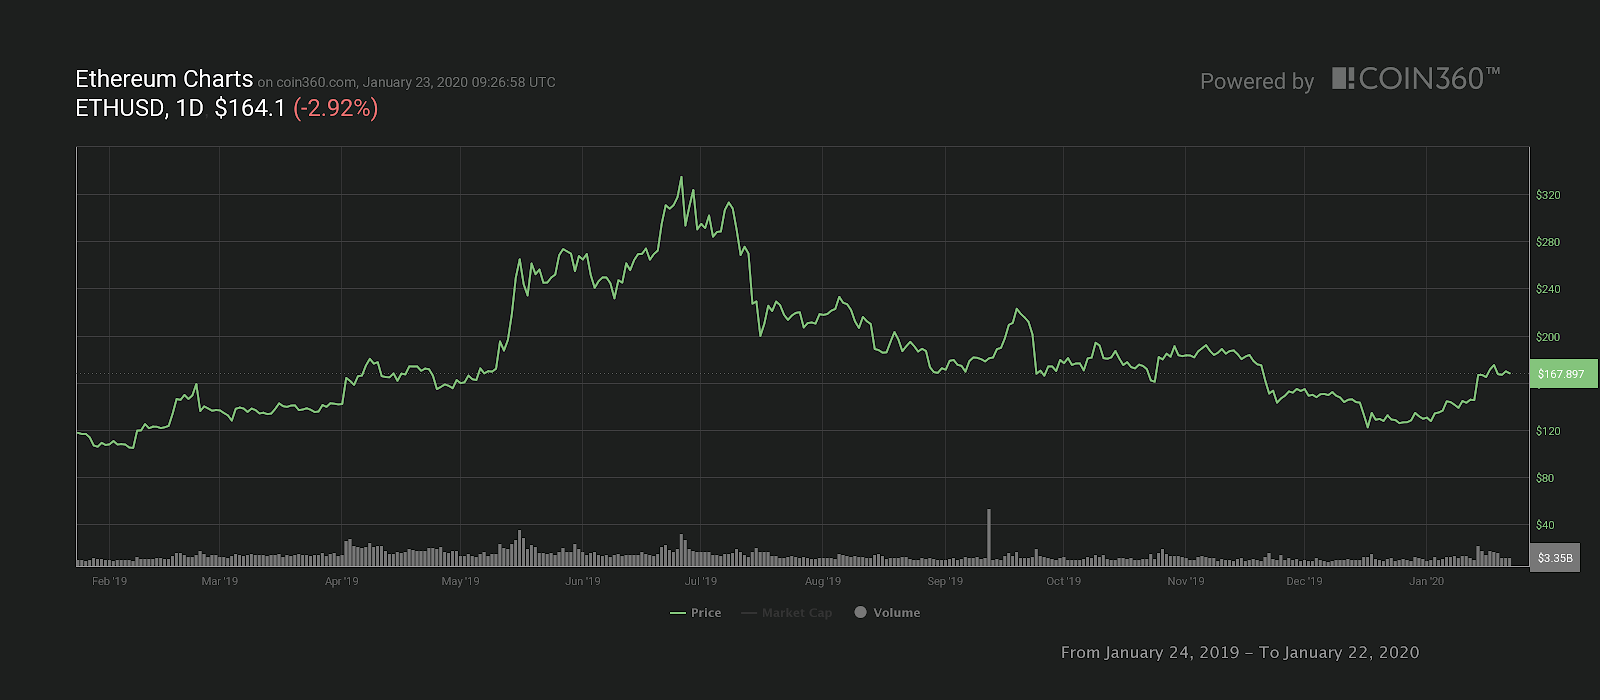 One-year Ether price chart